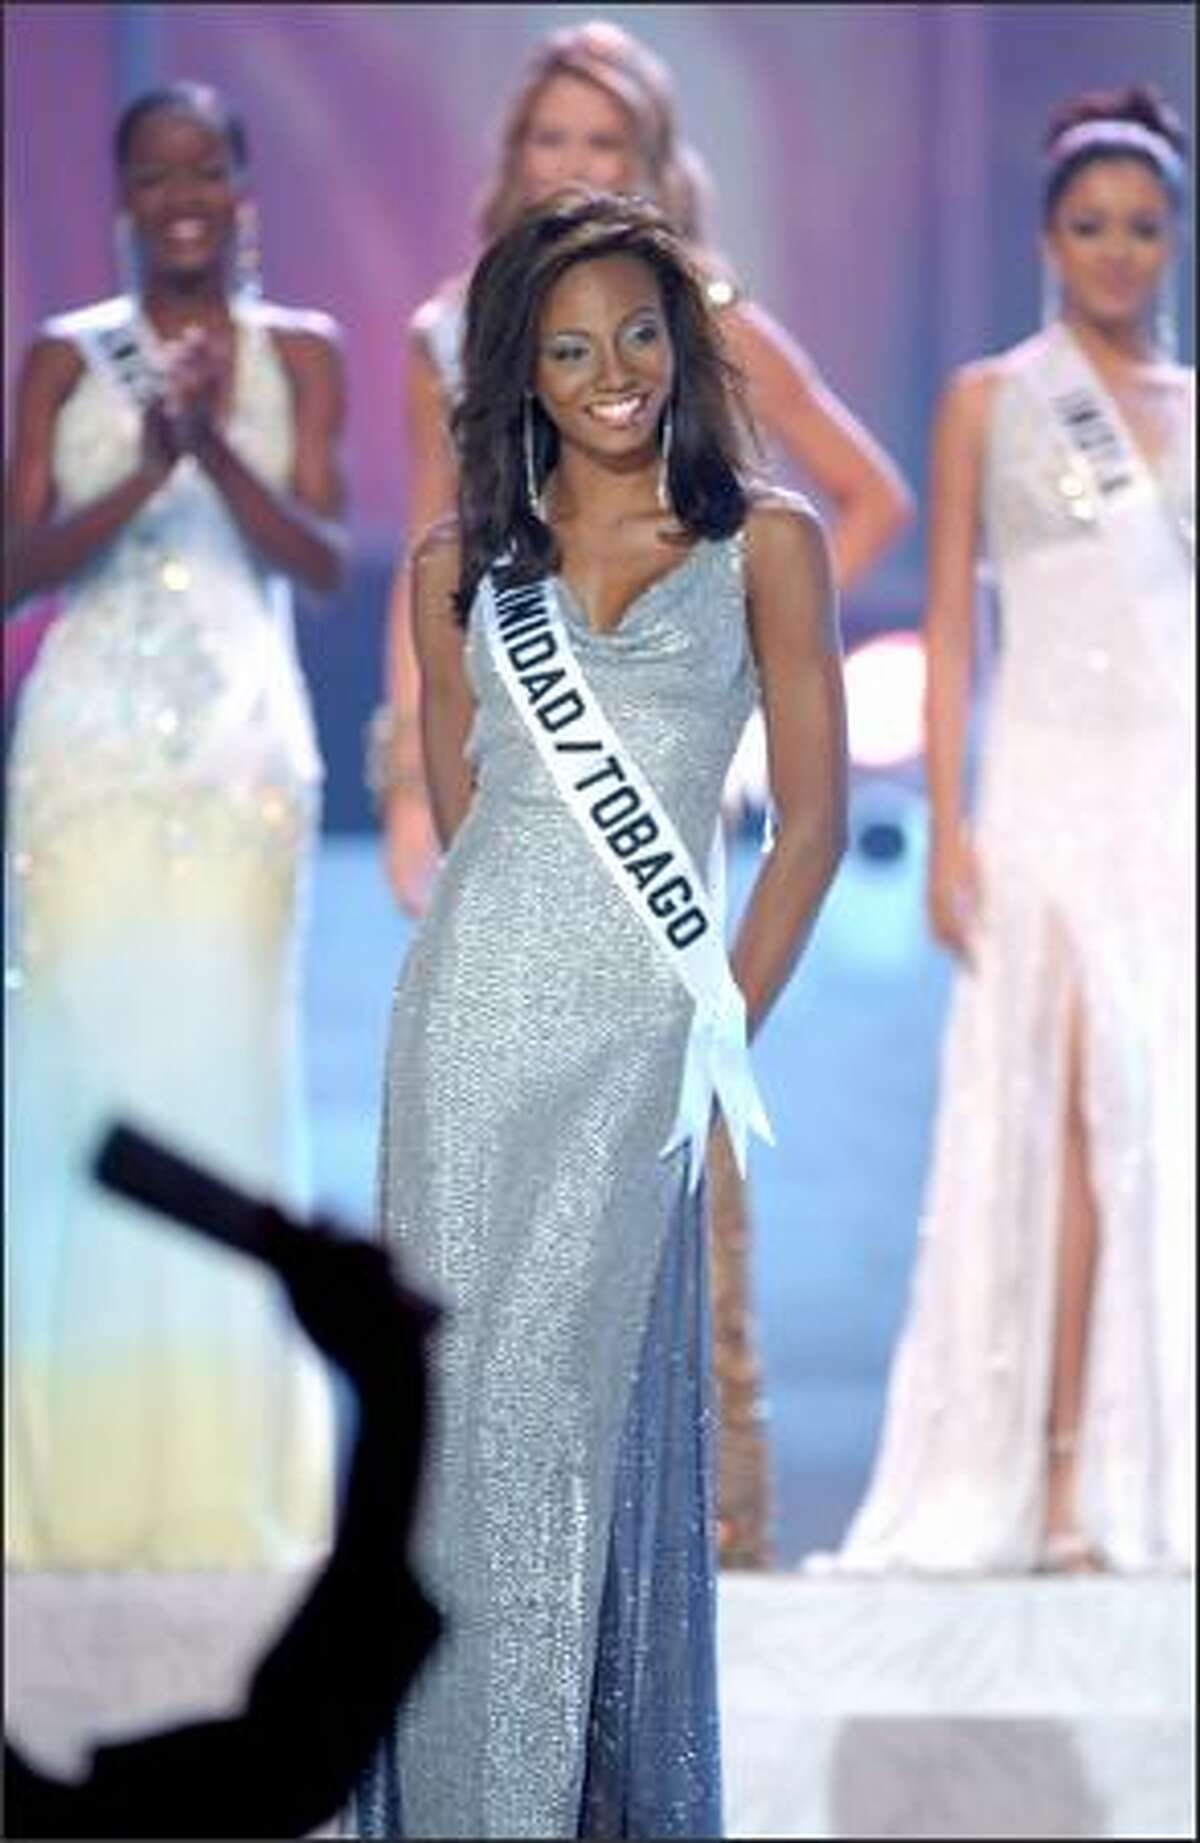 Danielle A. Jones, Miss Trinidad & Tobago.